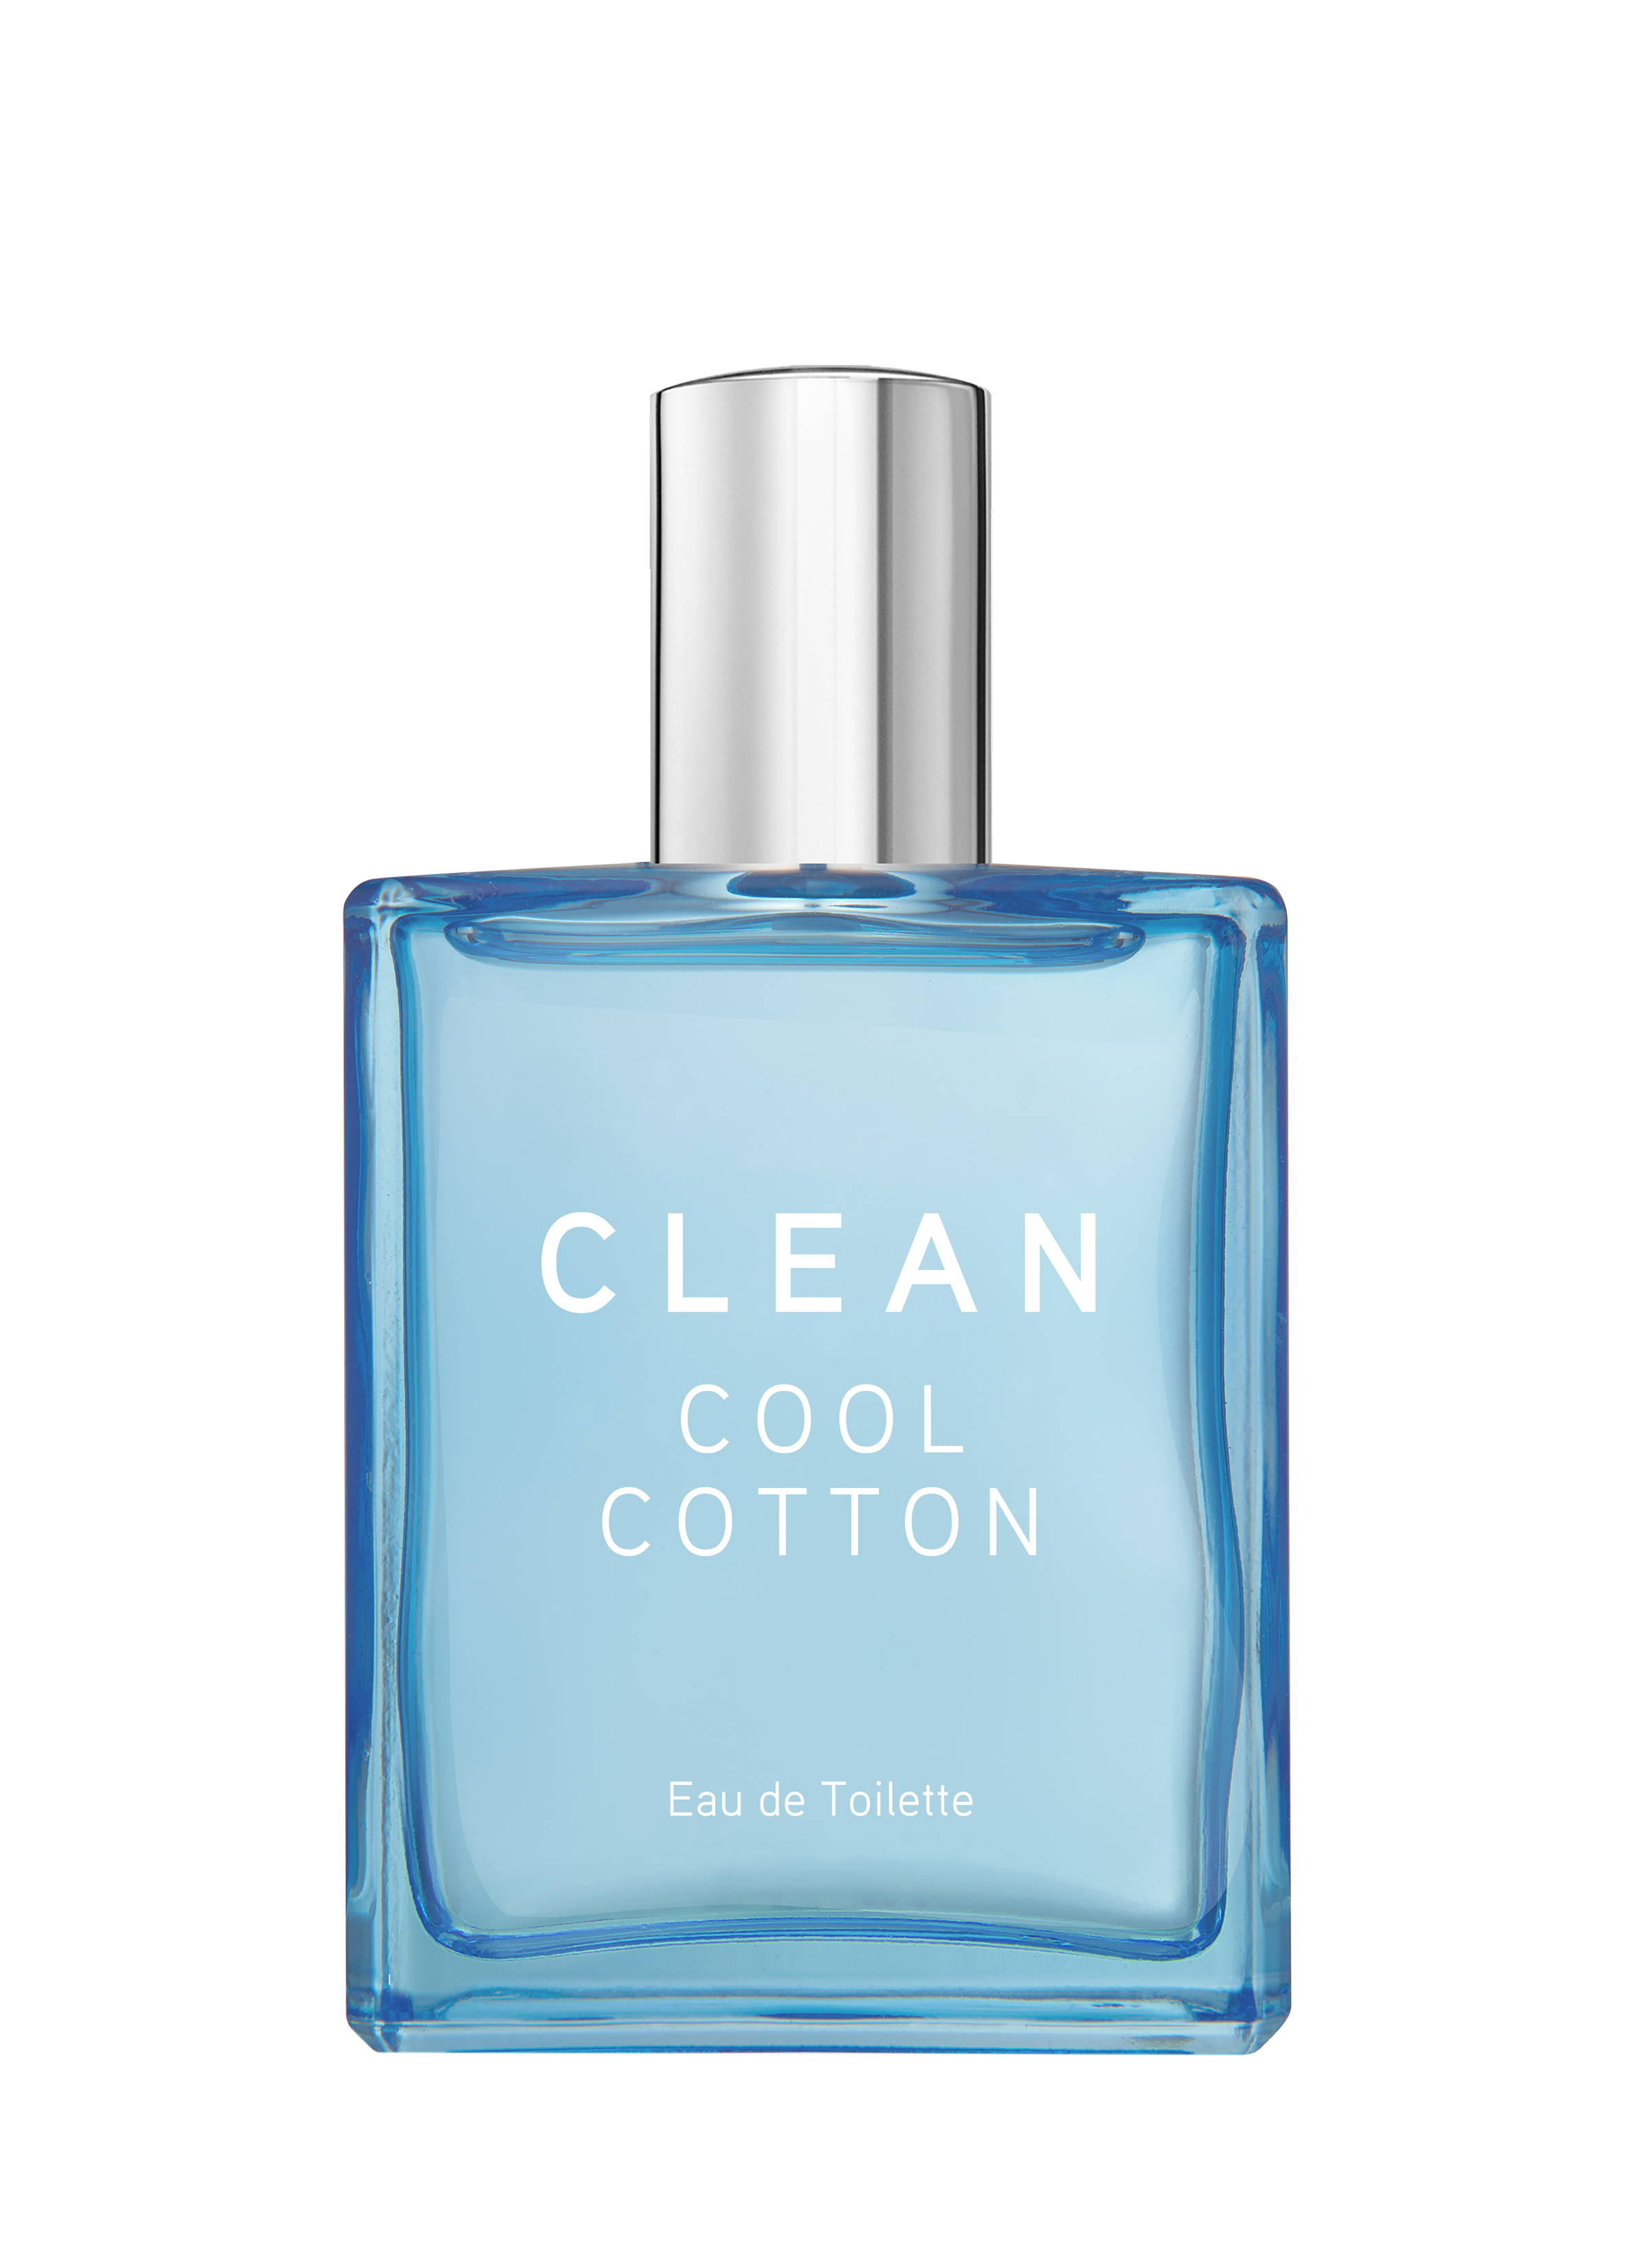 EDT_COOL COTTON_BOTTLE_122117.jpg